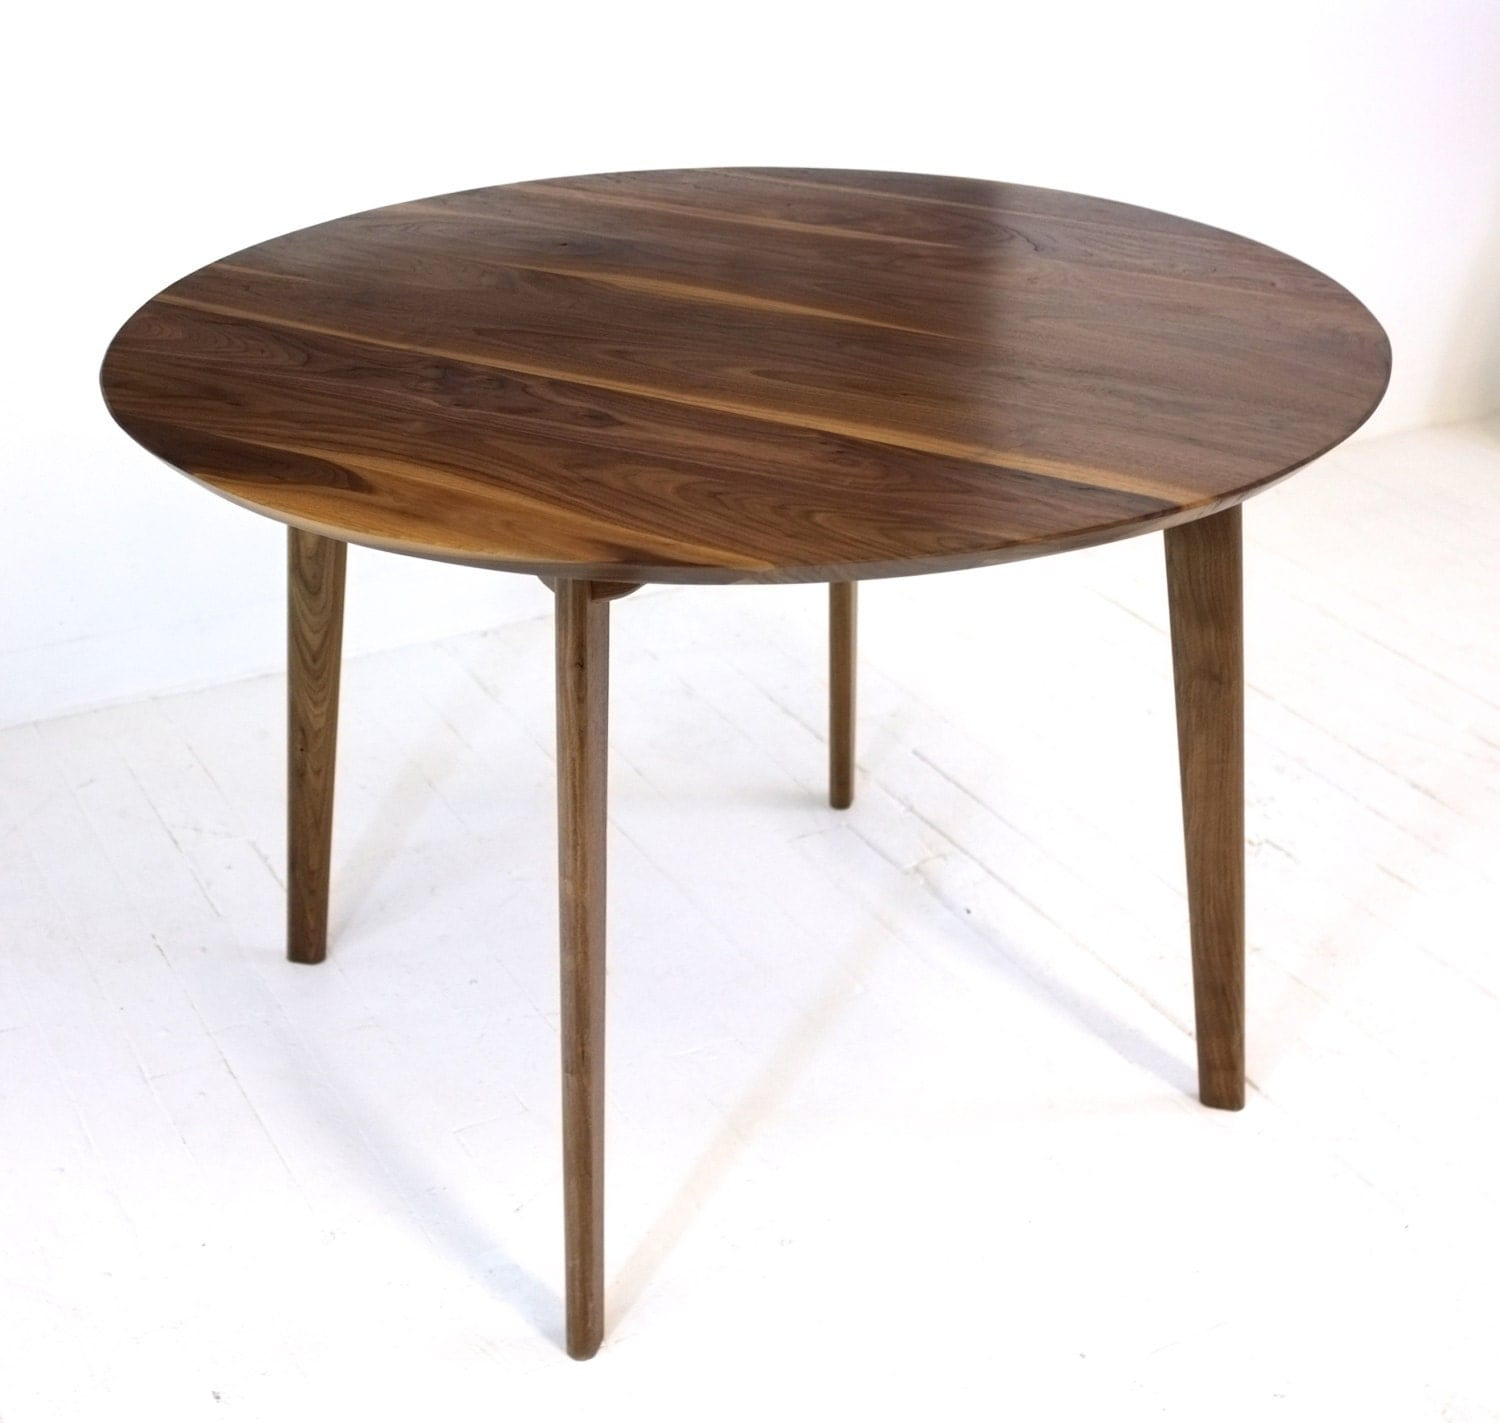 Mid Century Modern Dining: Mid Century Modern Round Dining Table Cafe Table Solid